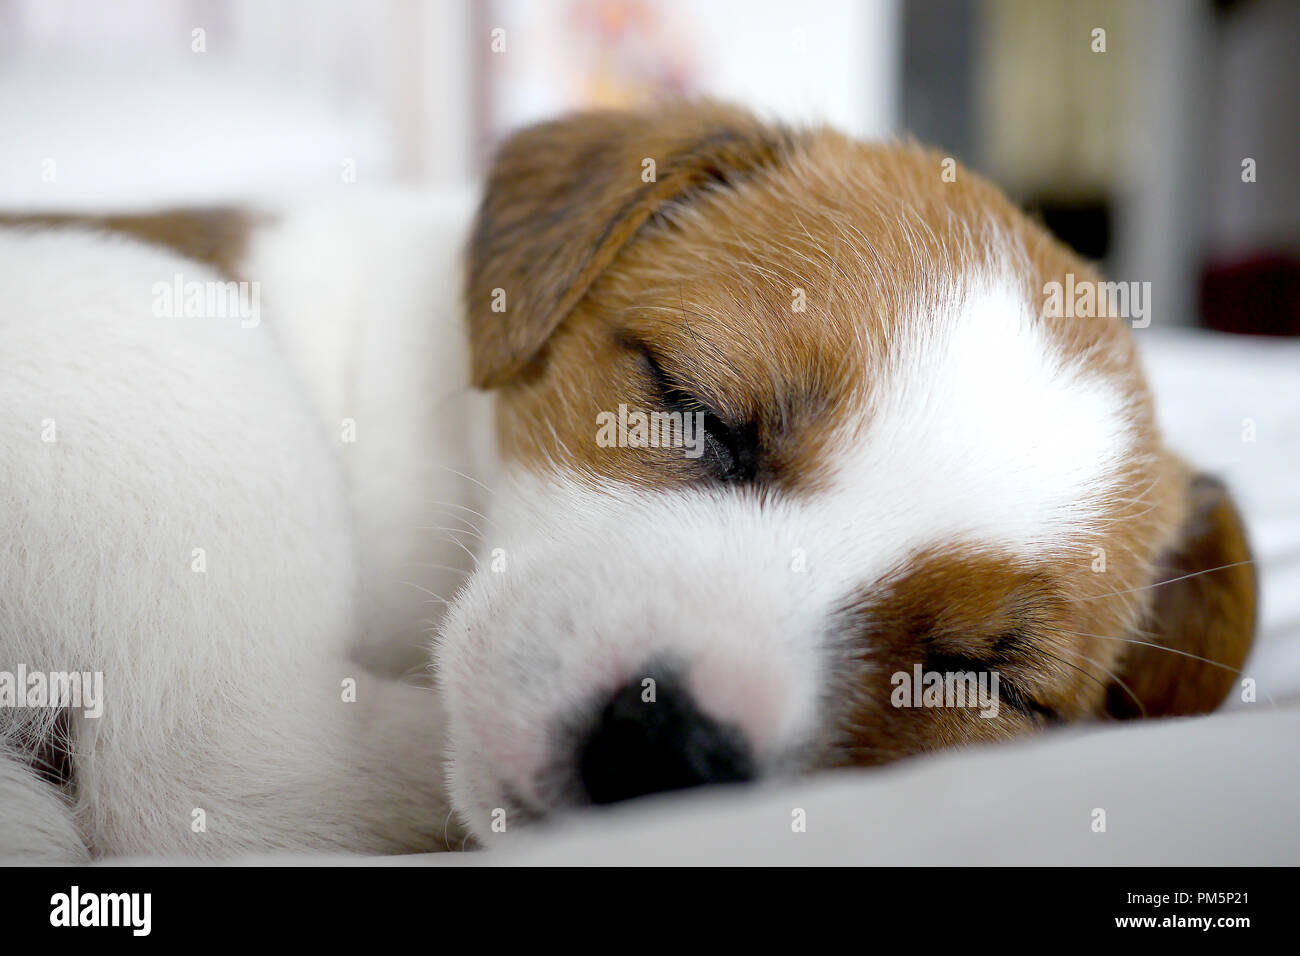 Jack Russel Terrier Puppy High Resolution Stock Photography And Images Alamy